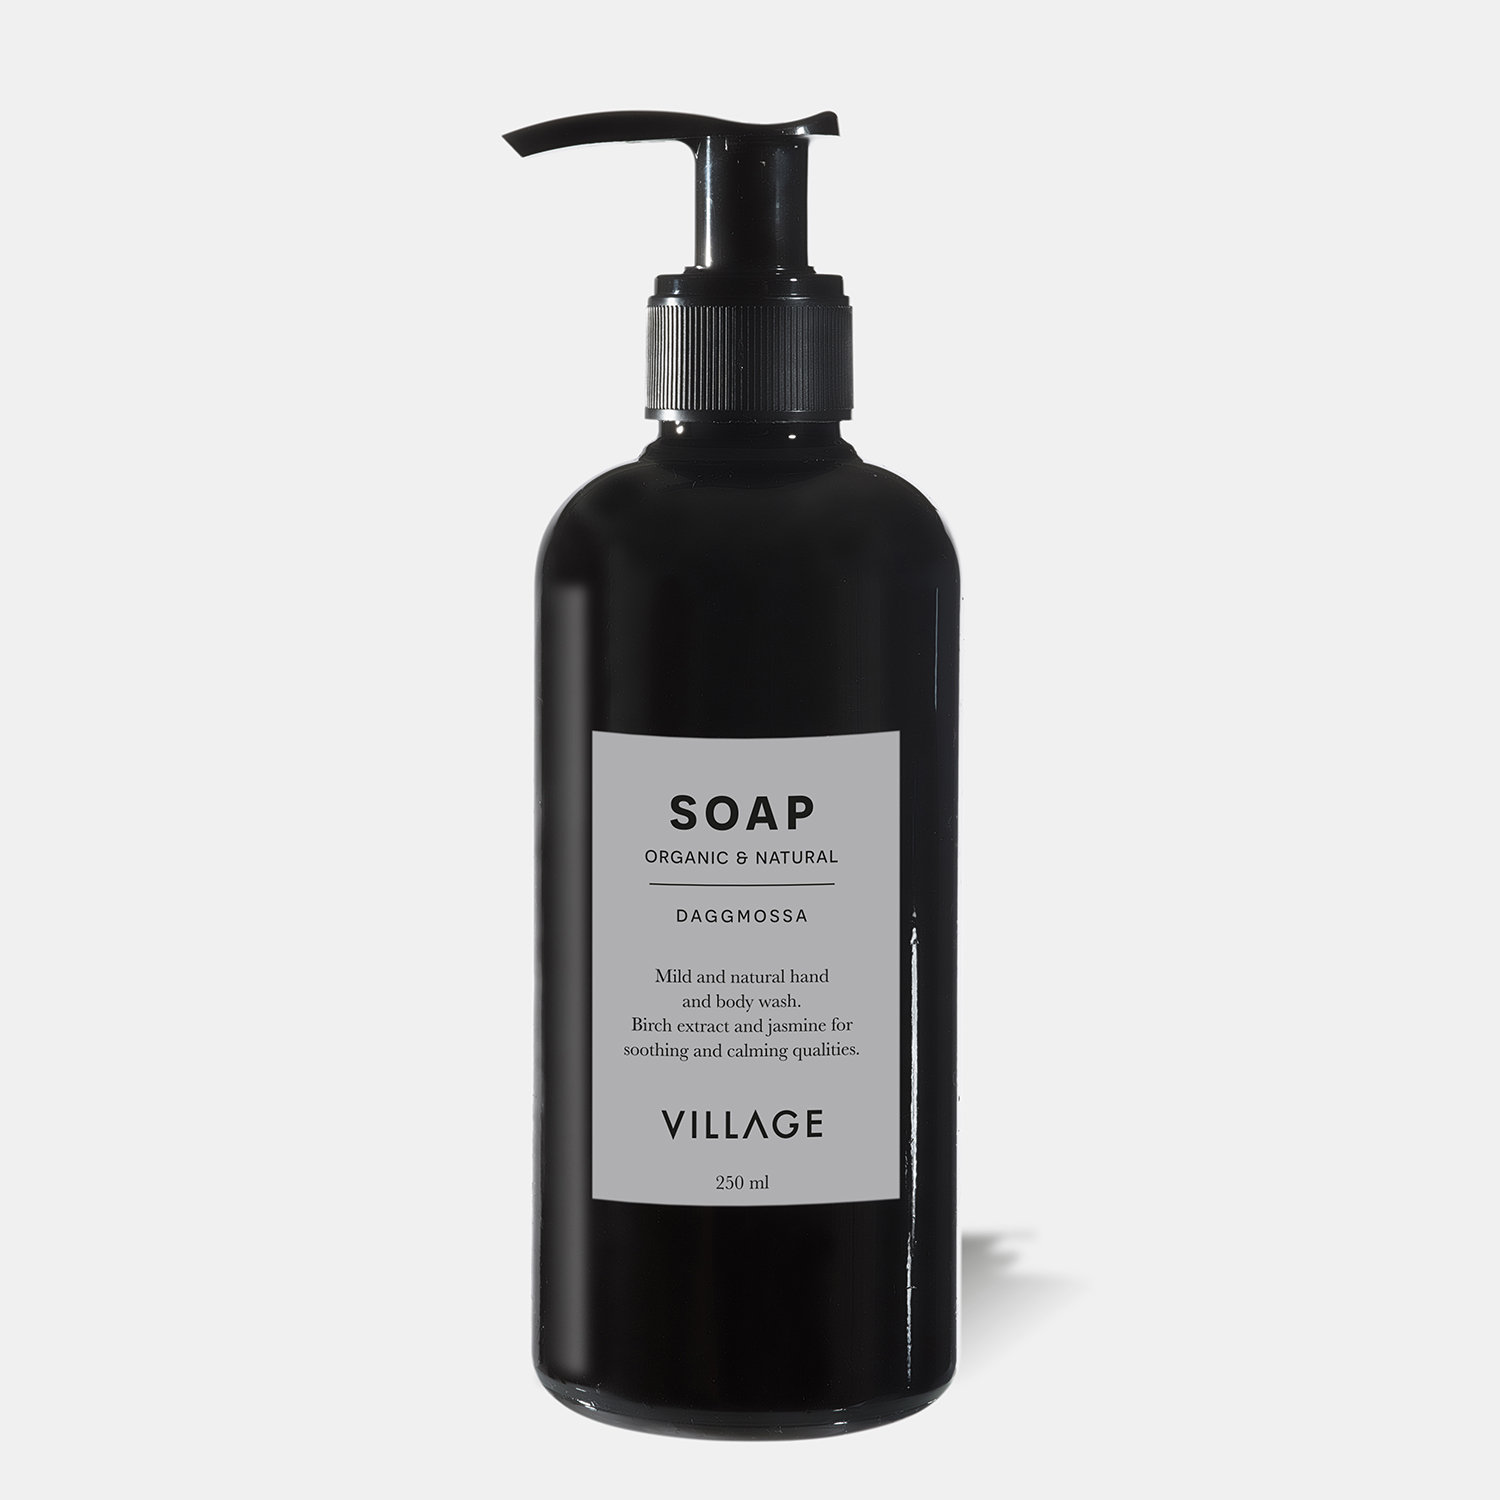 village liquid soap swedish organic brand